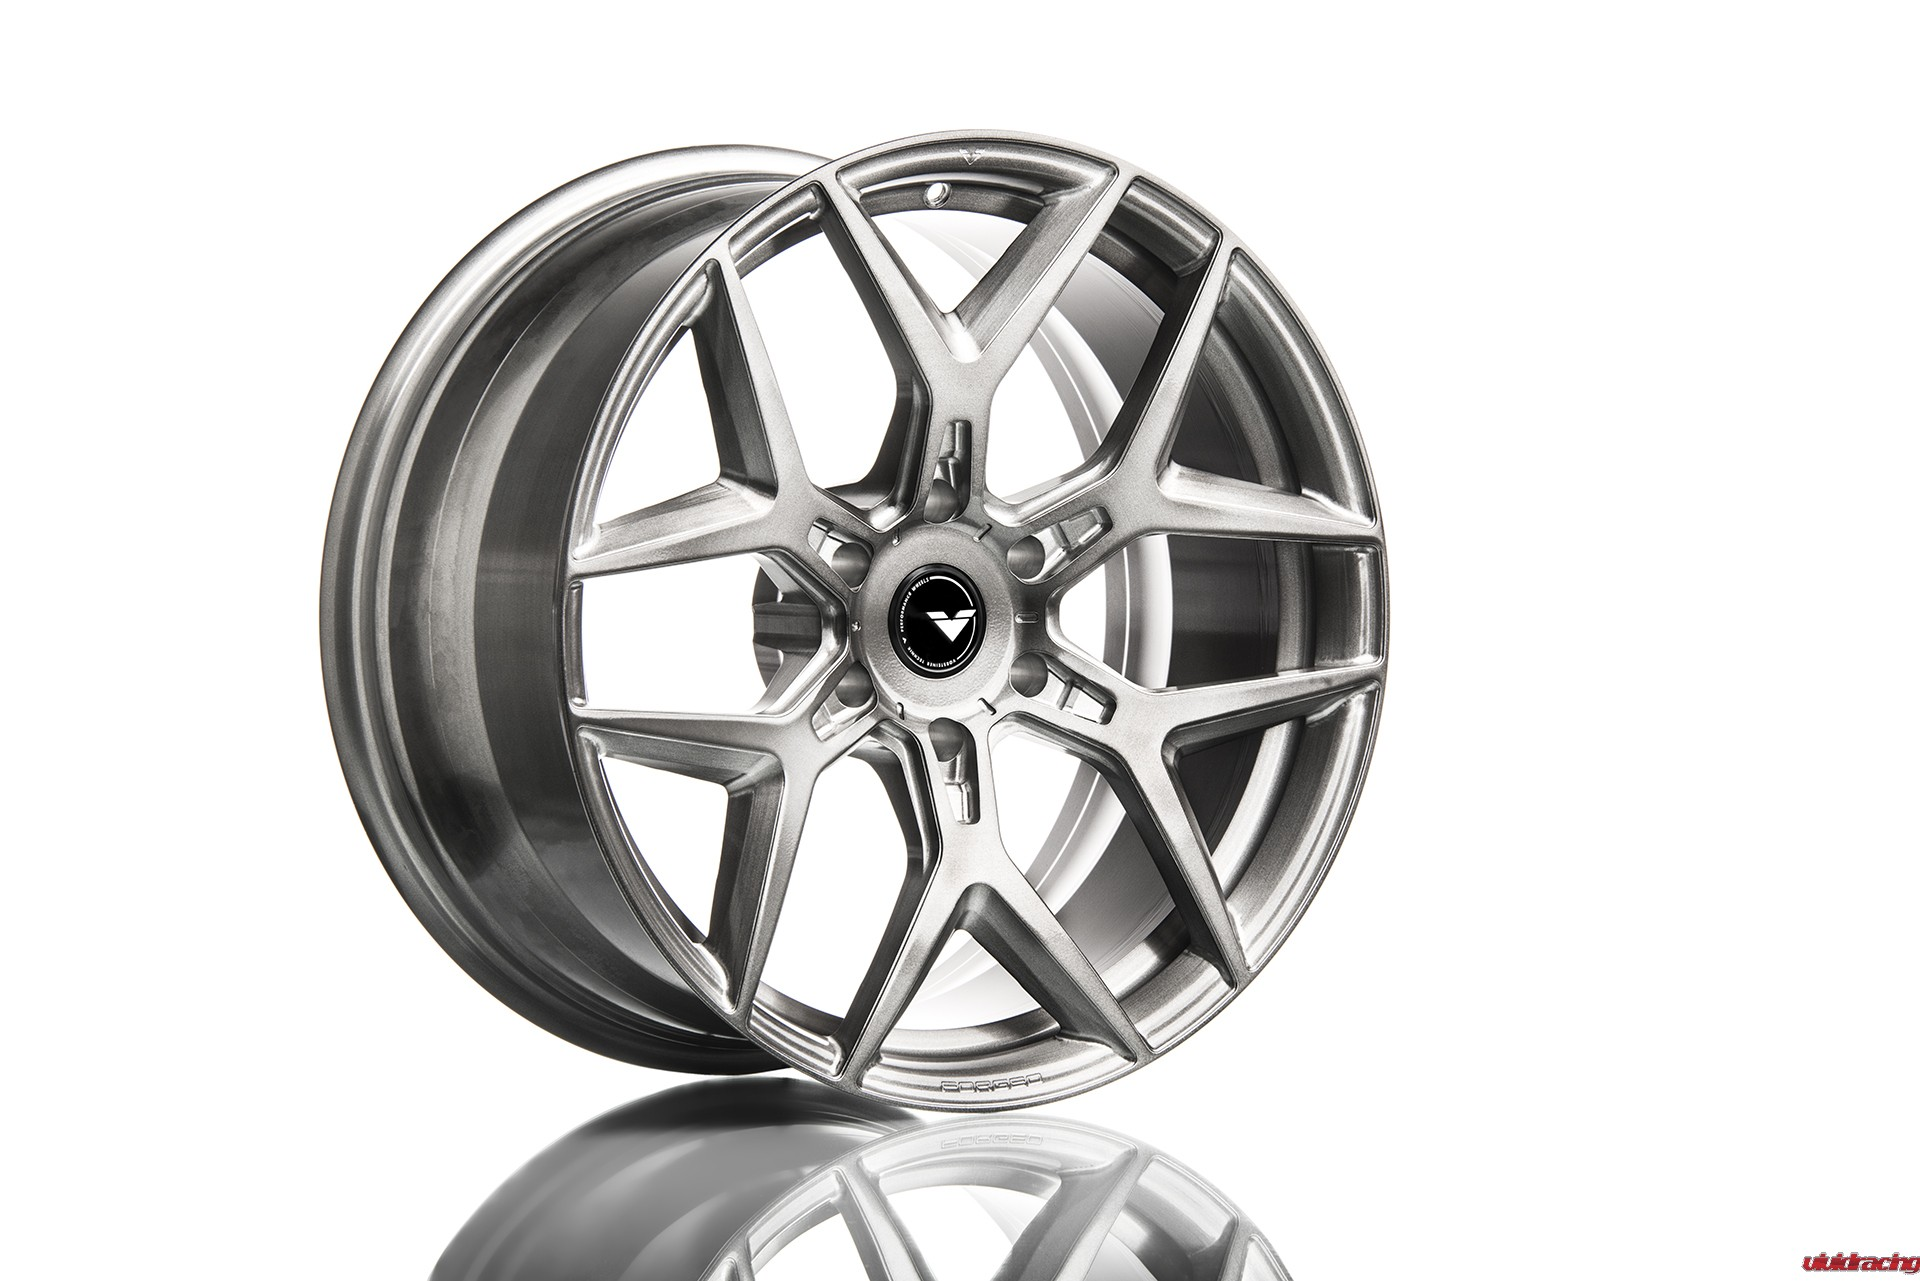 vorsteiner-forged-drs-601-truck-wheel_35599027624_o